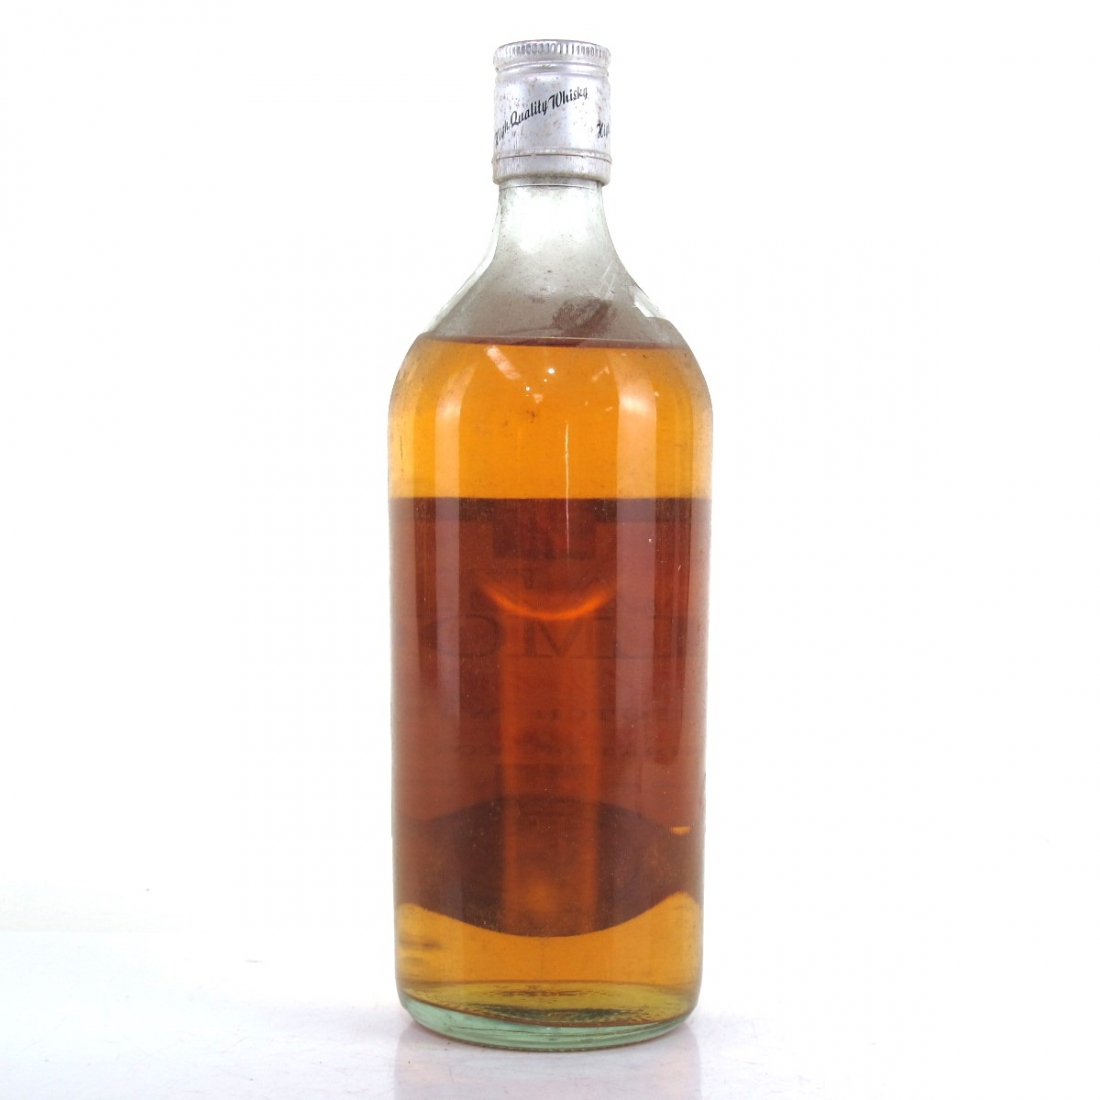 Frazer Gilmore 5 Year Old Scotch Whisky 1980s